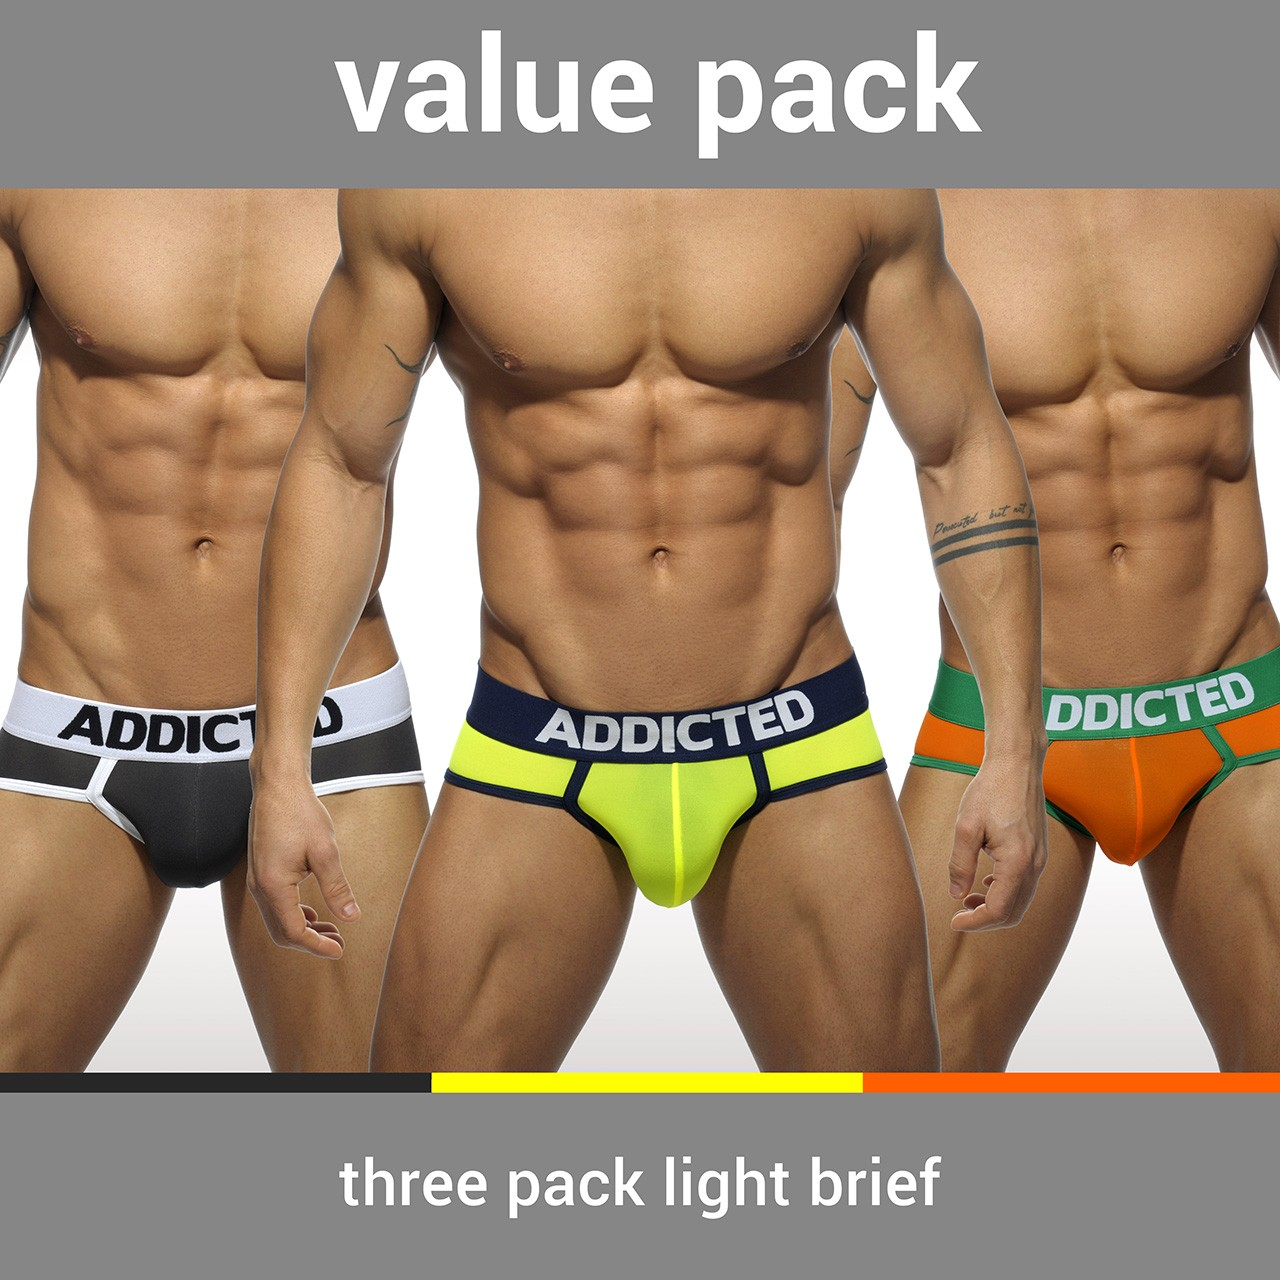 AD402P - 3 PACK LIGHT BRIEF